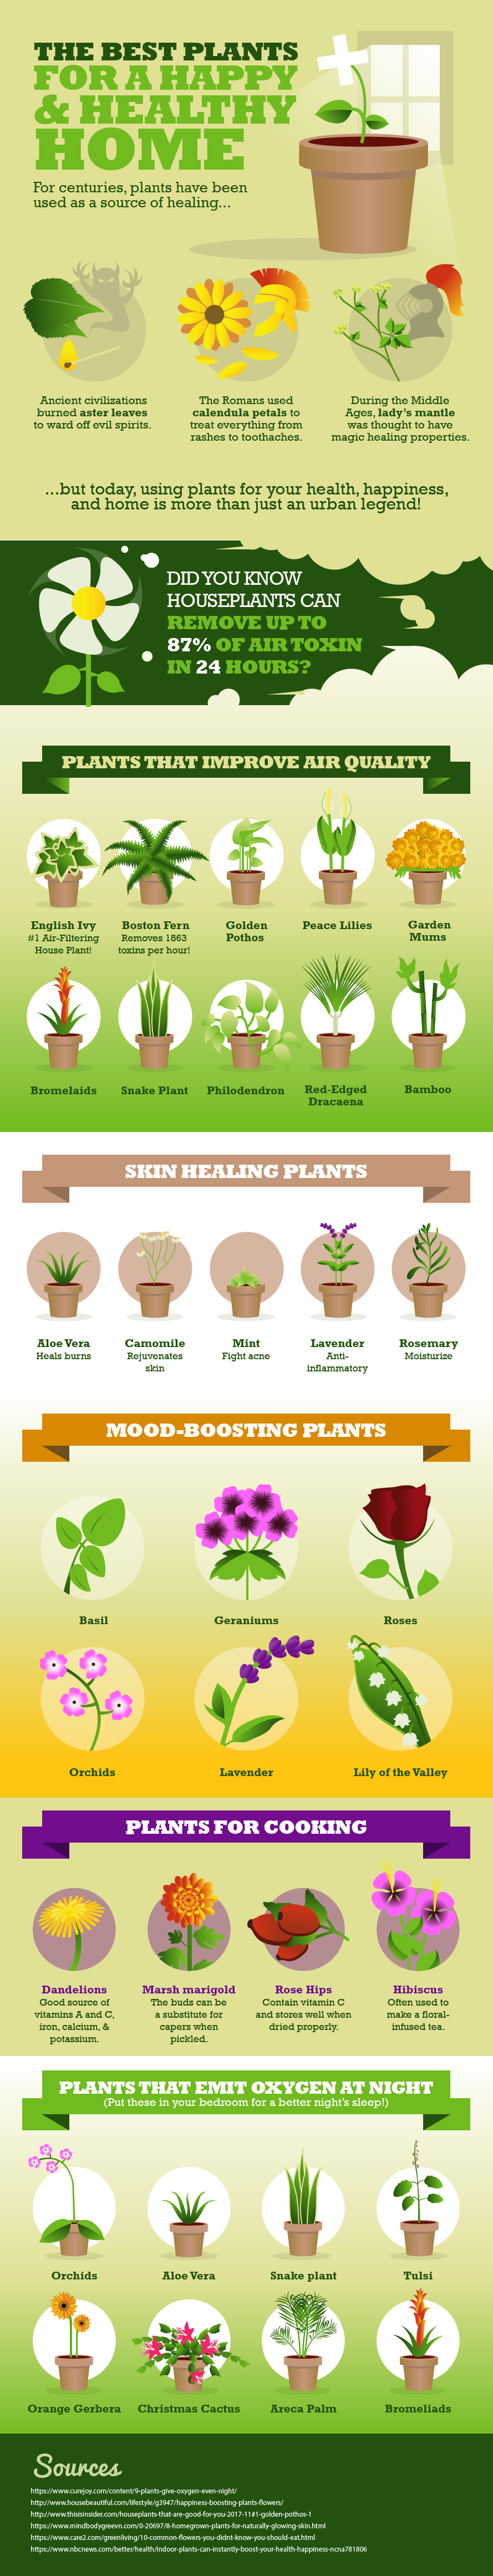 Benefits Of Houseplants And How To Keep Them Healthy,Budget Friendly Home Bar Ideas On A Budget